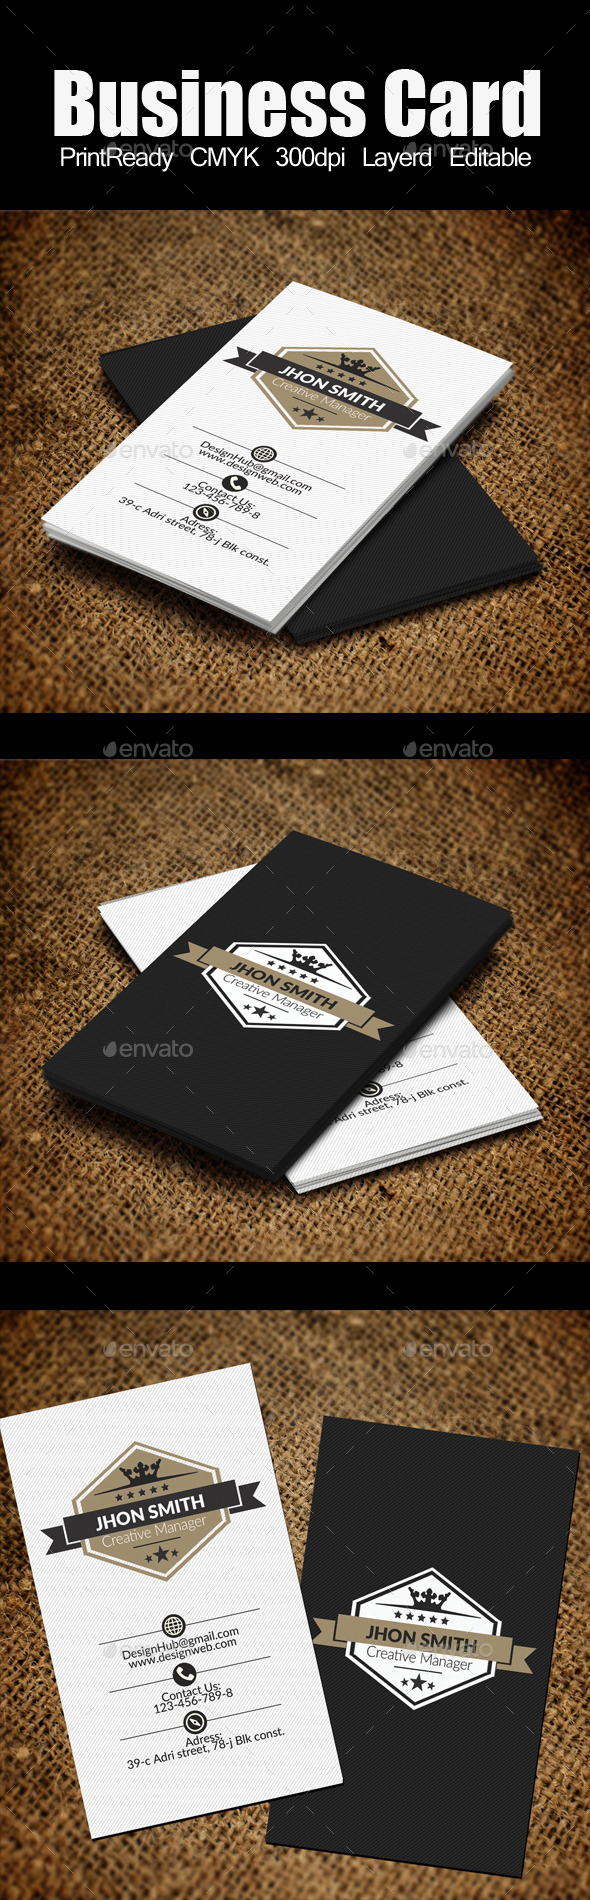 retro business cards - Ideal.vistalist.co